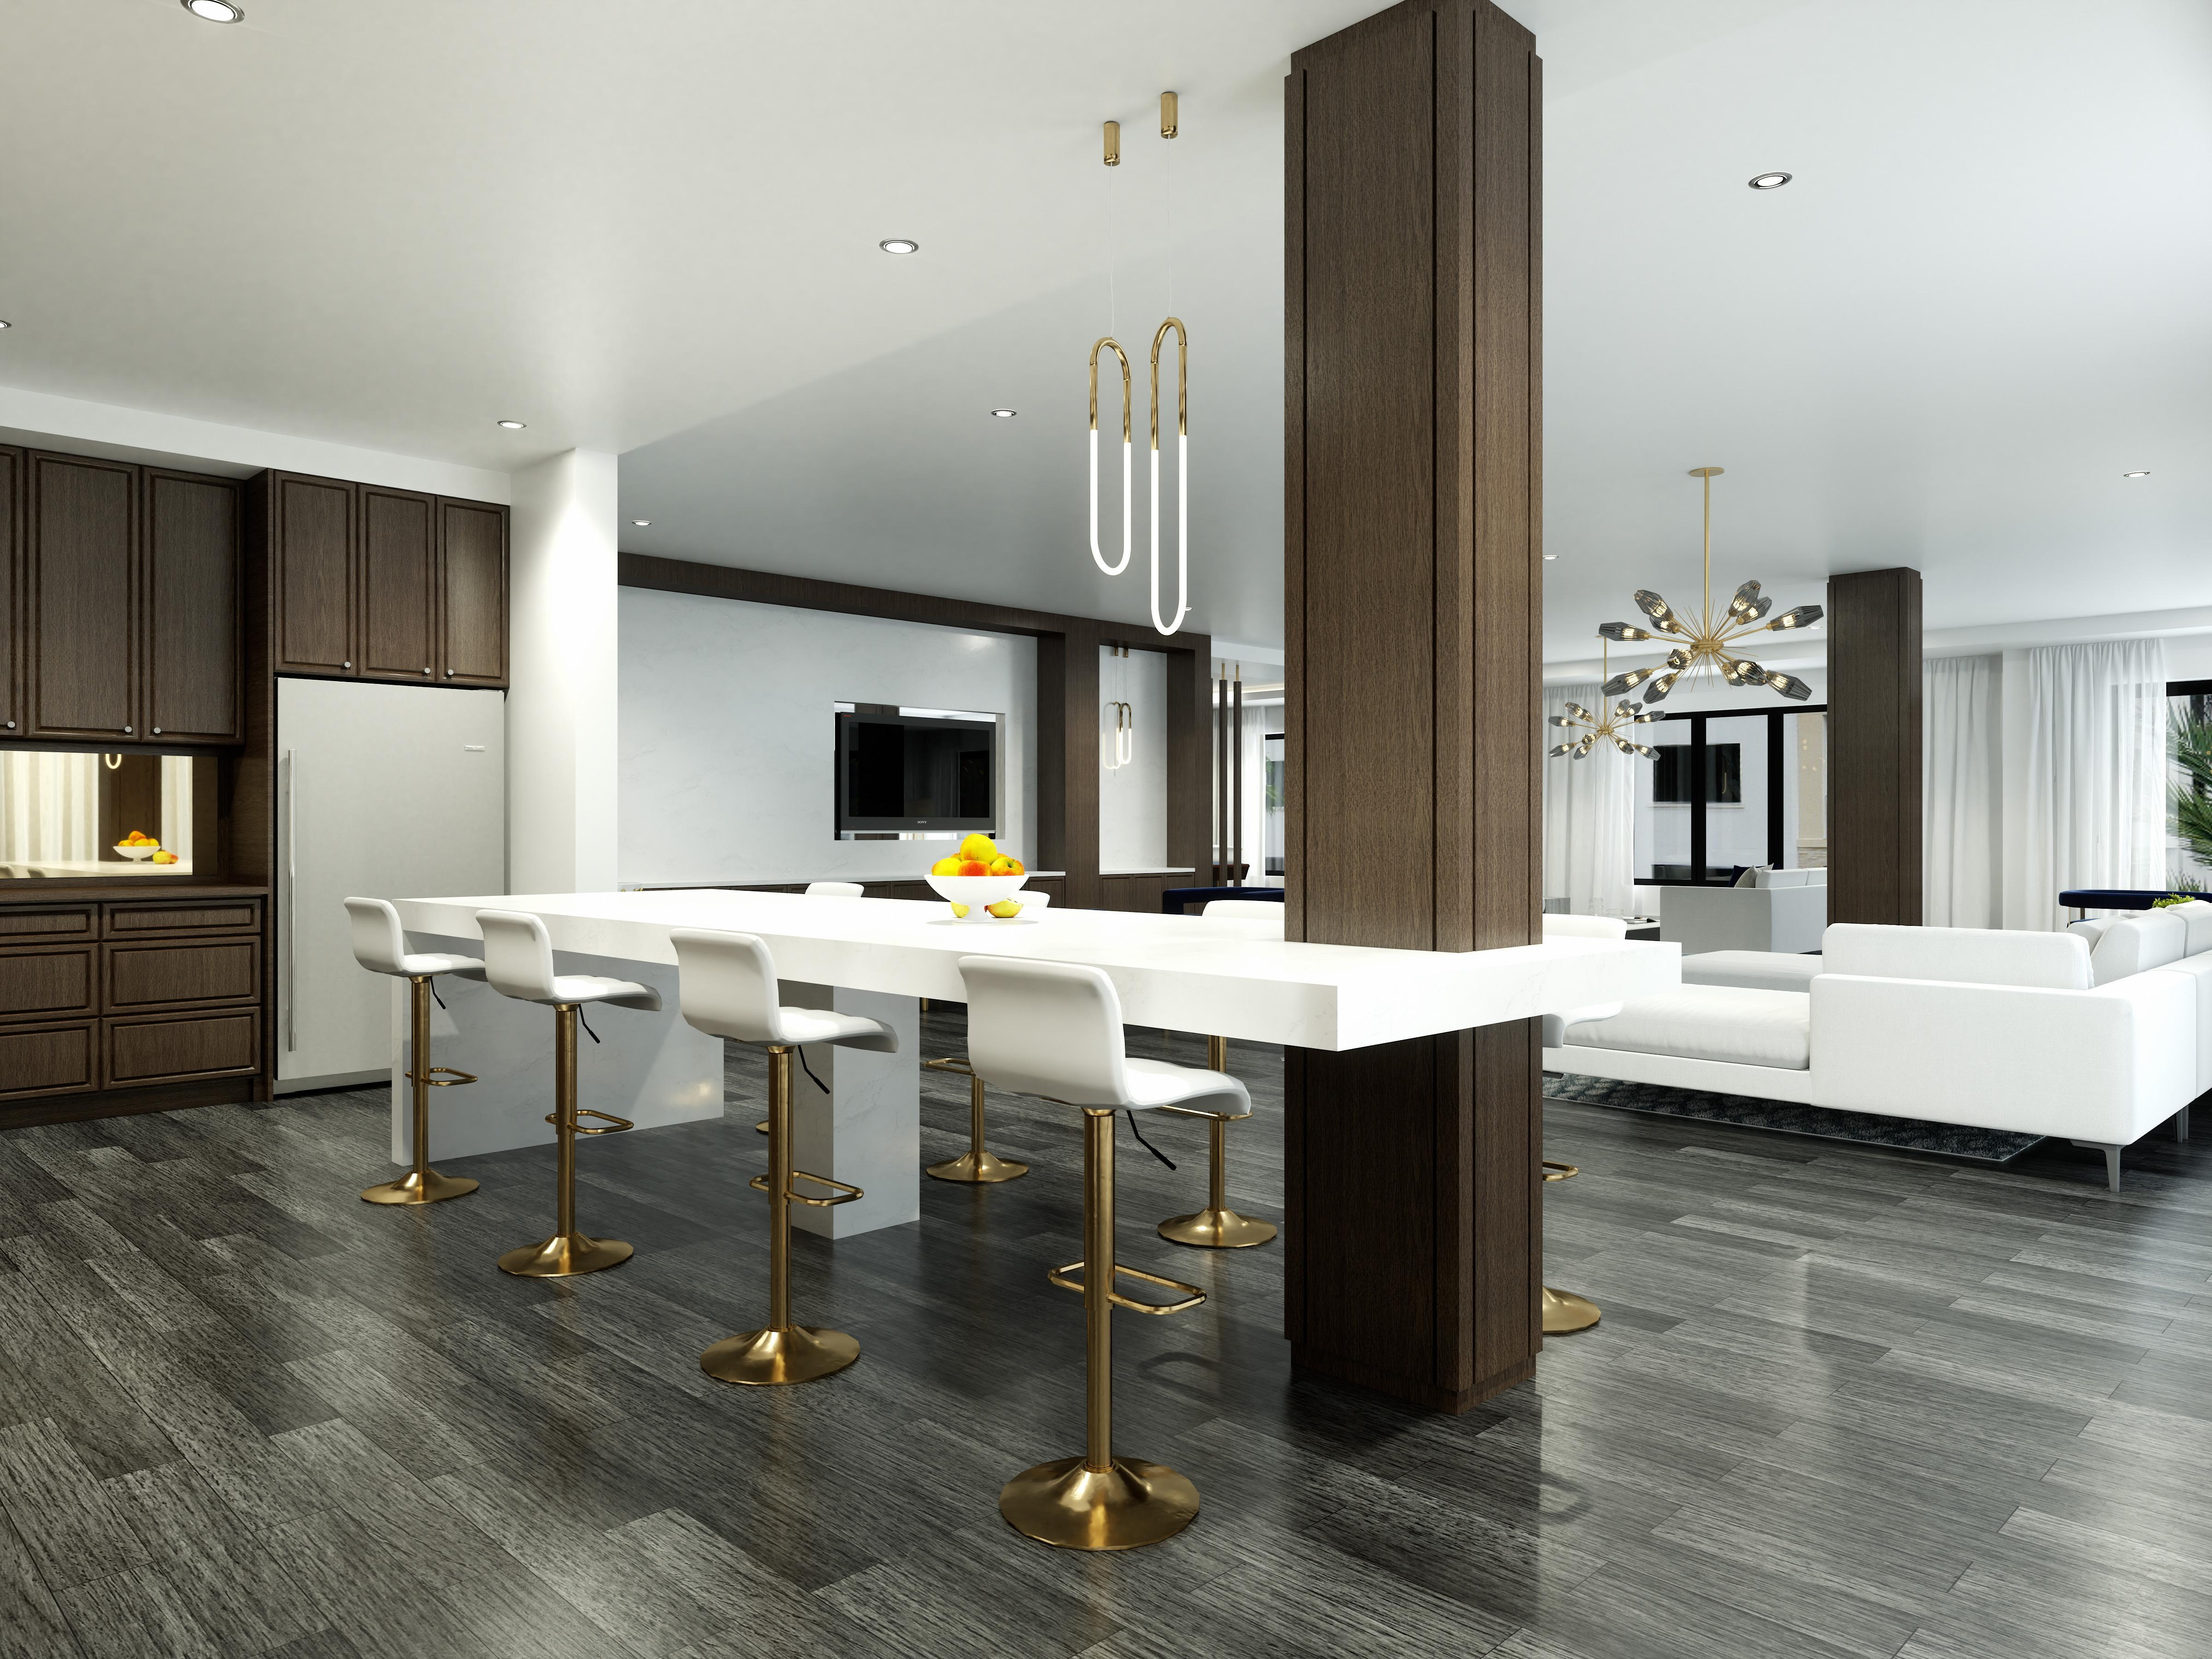 Kitchen featured in the Bianca By The Ronto Group in Naples, FL